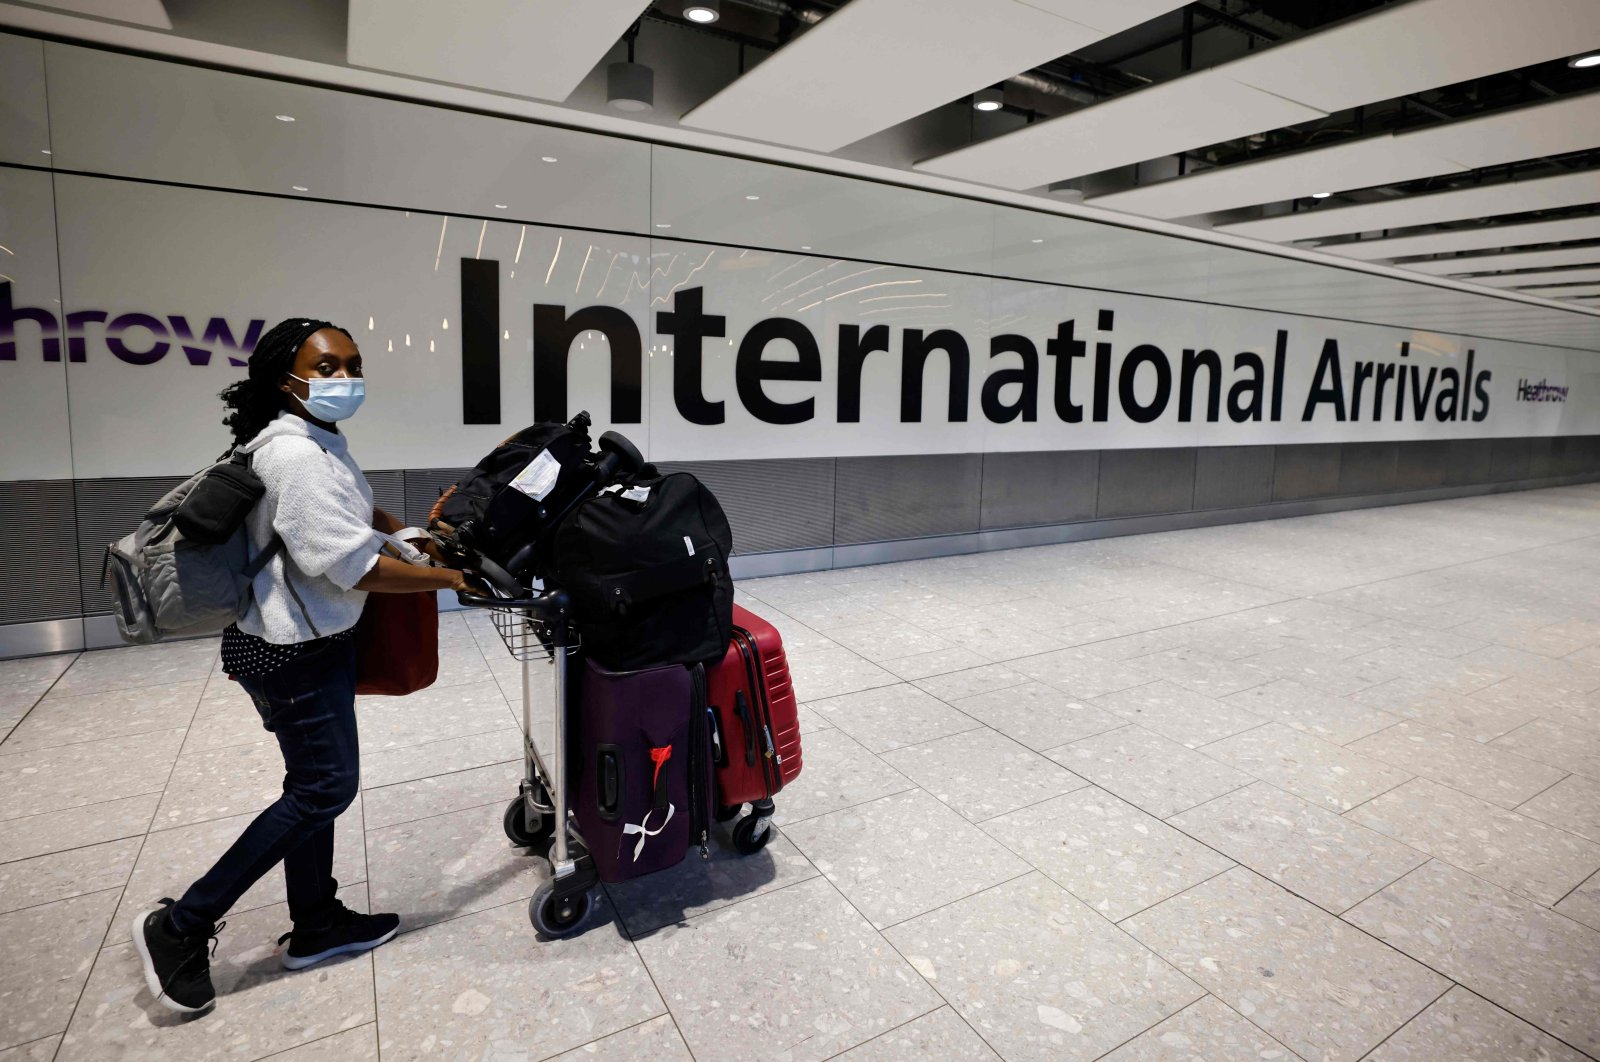 Travelers arrive at Heathrow's Terminal 5 in west London as quarantine restrictions ease, Aug. 2, 2021. (AFP Photo)